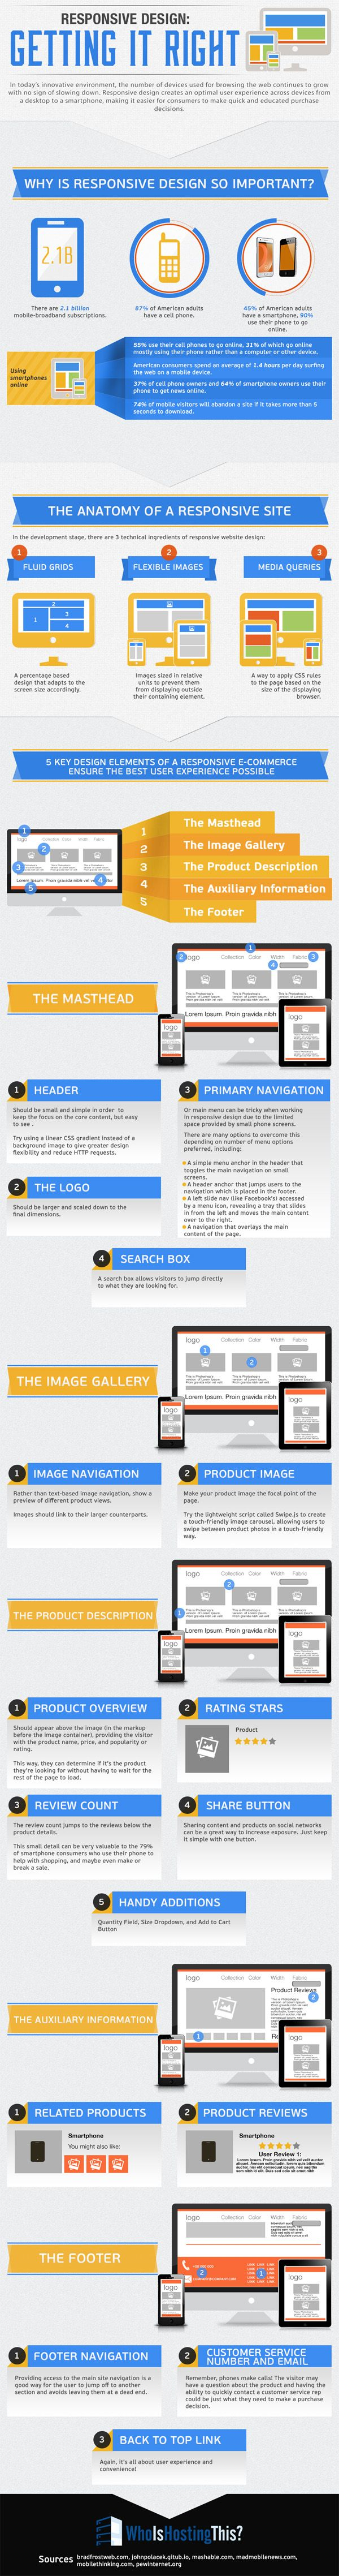 This infographic shares a helpful tips on how to build your responsive design the right way. [Infographic]